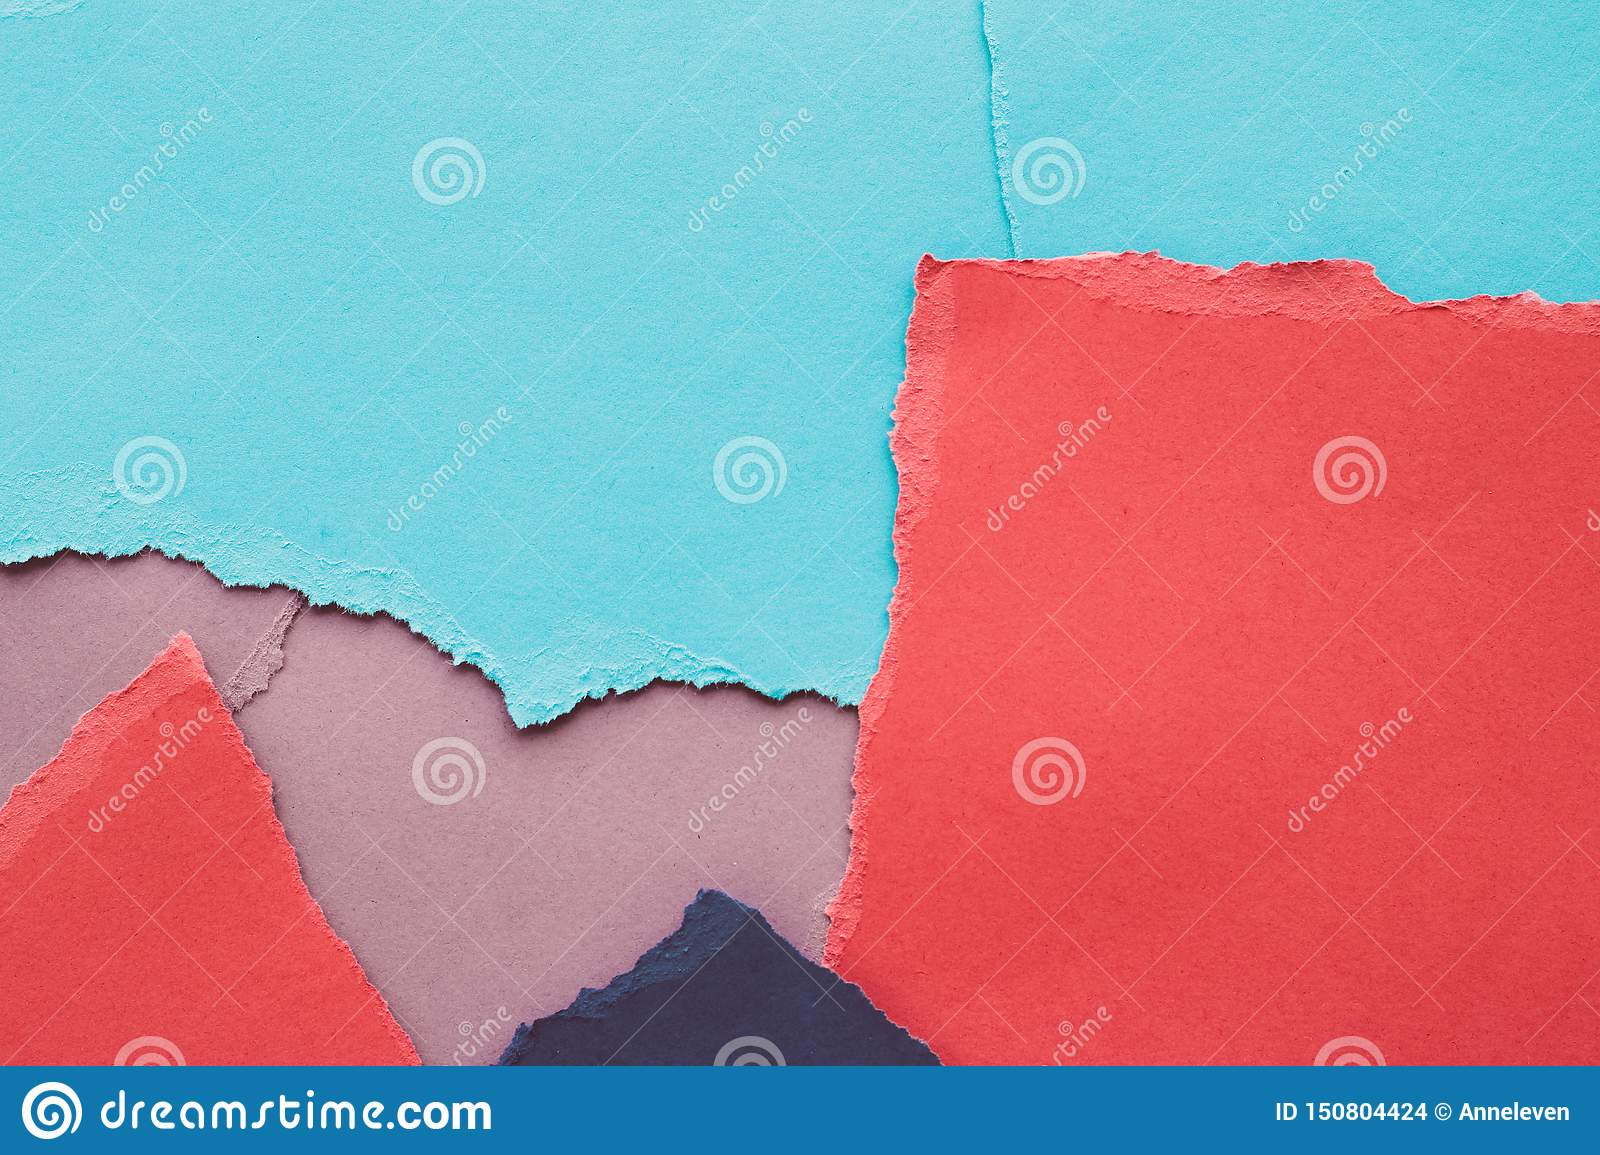 Torn paper textured background, stationery mockup